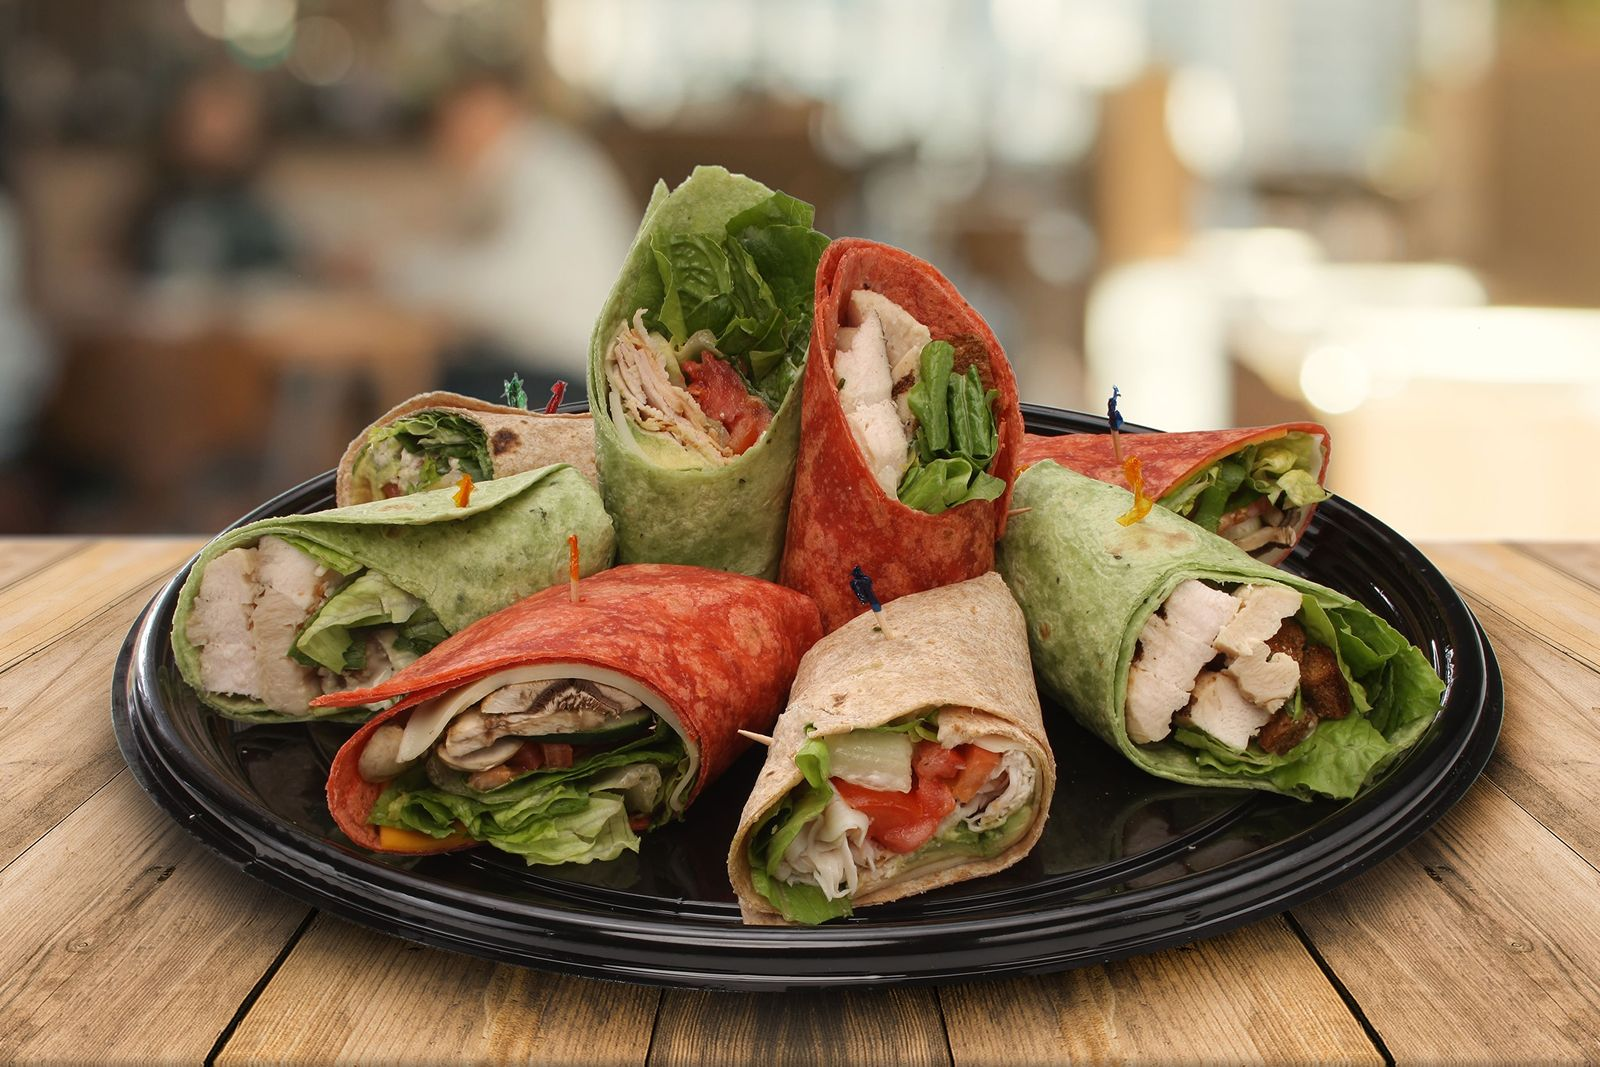 MFP Deli and Catering Introduces New Website